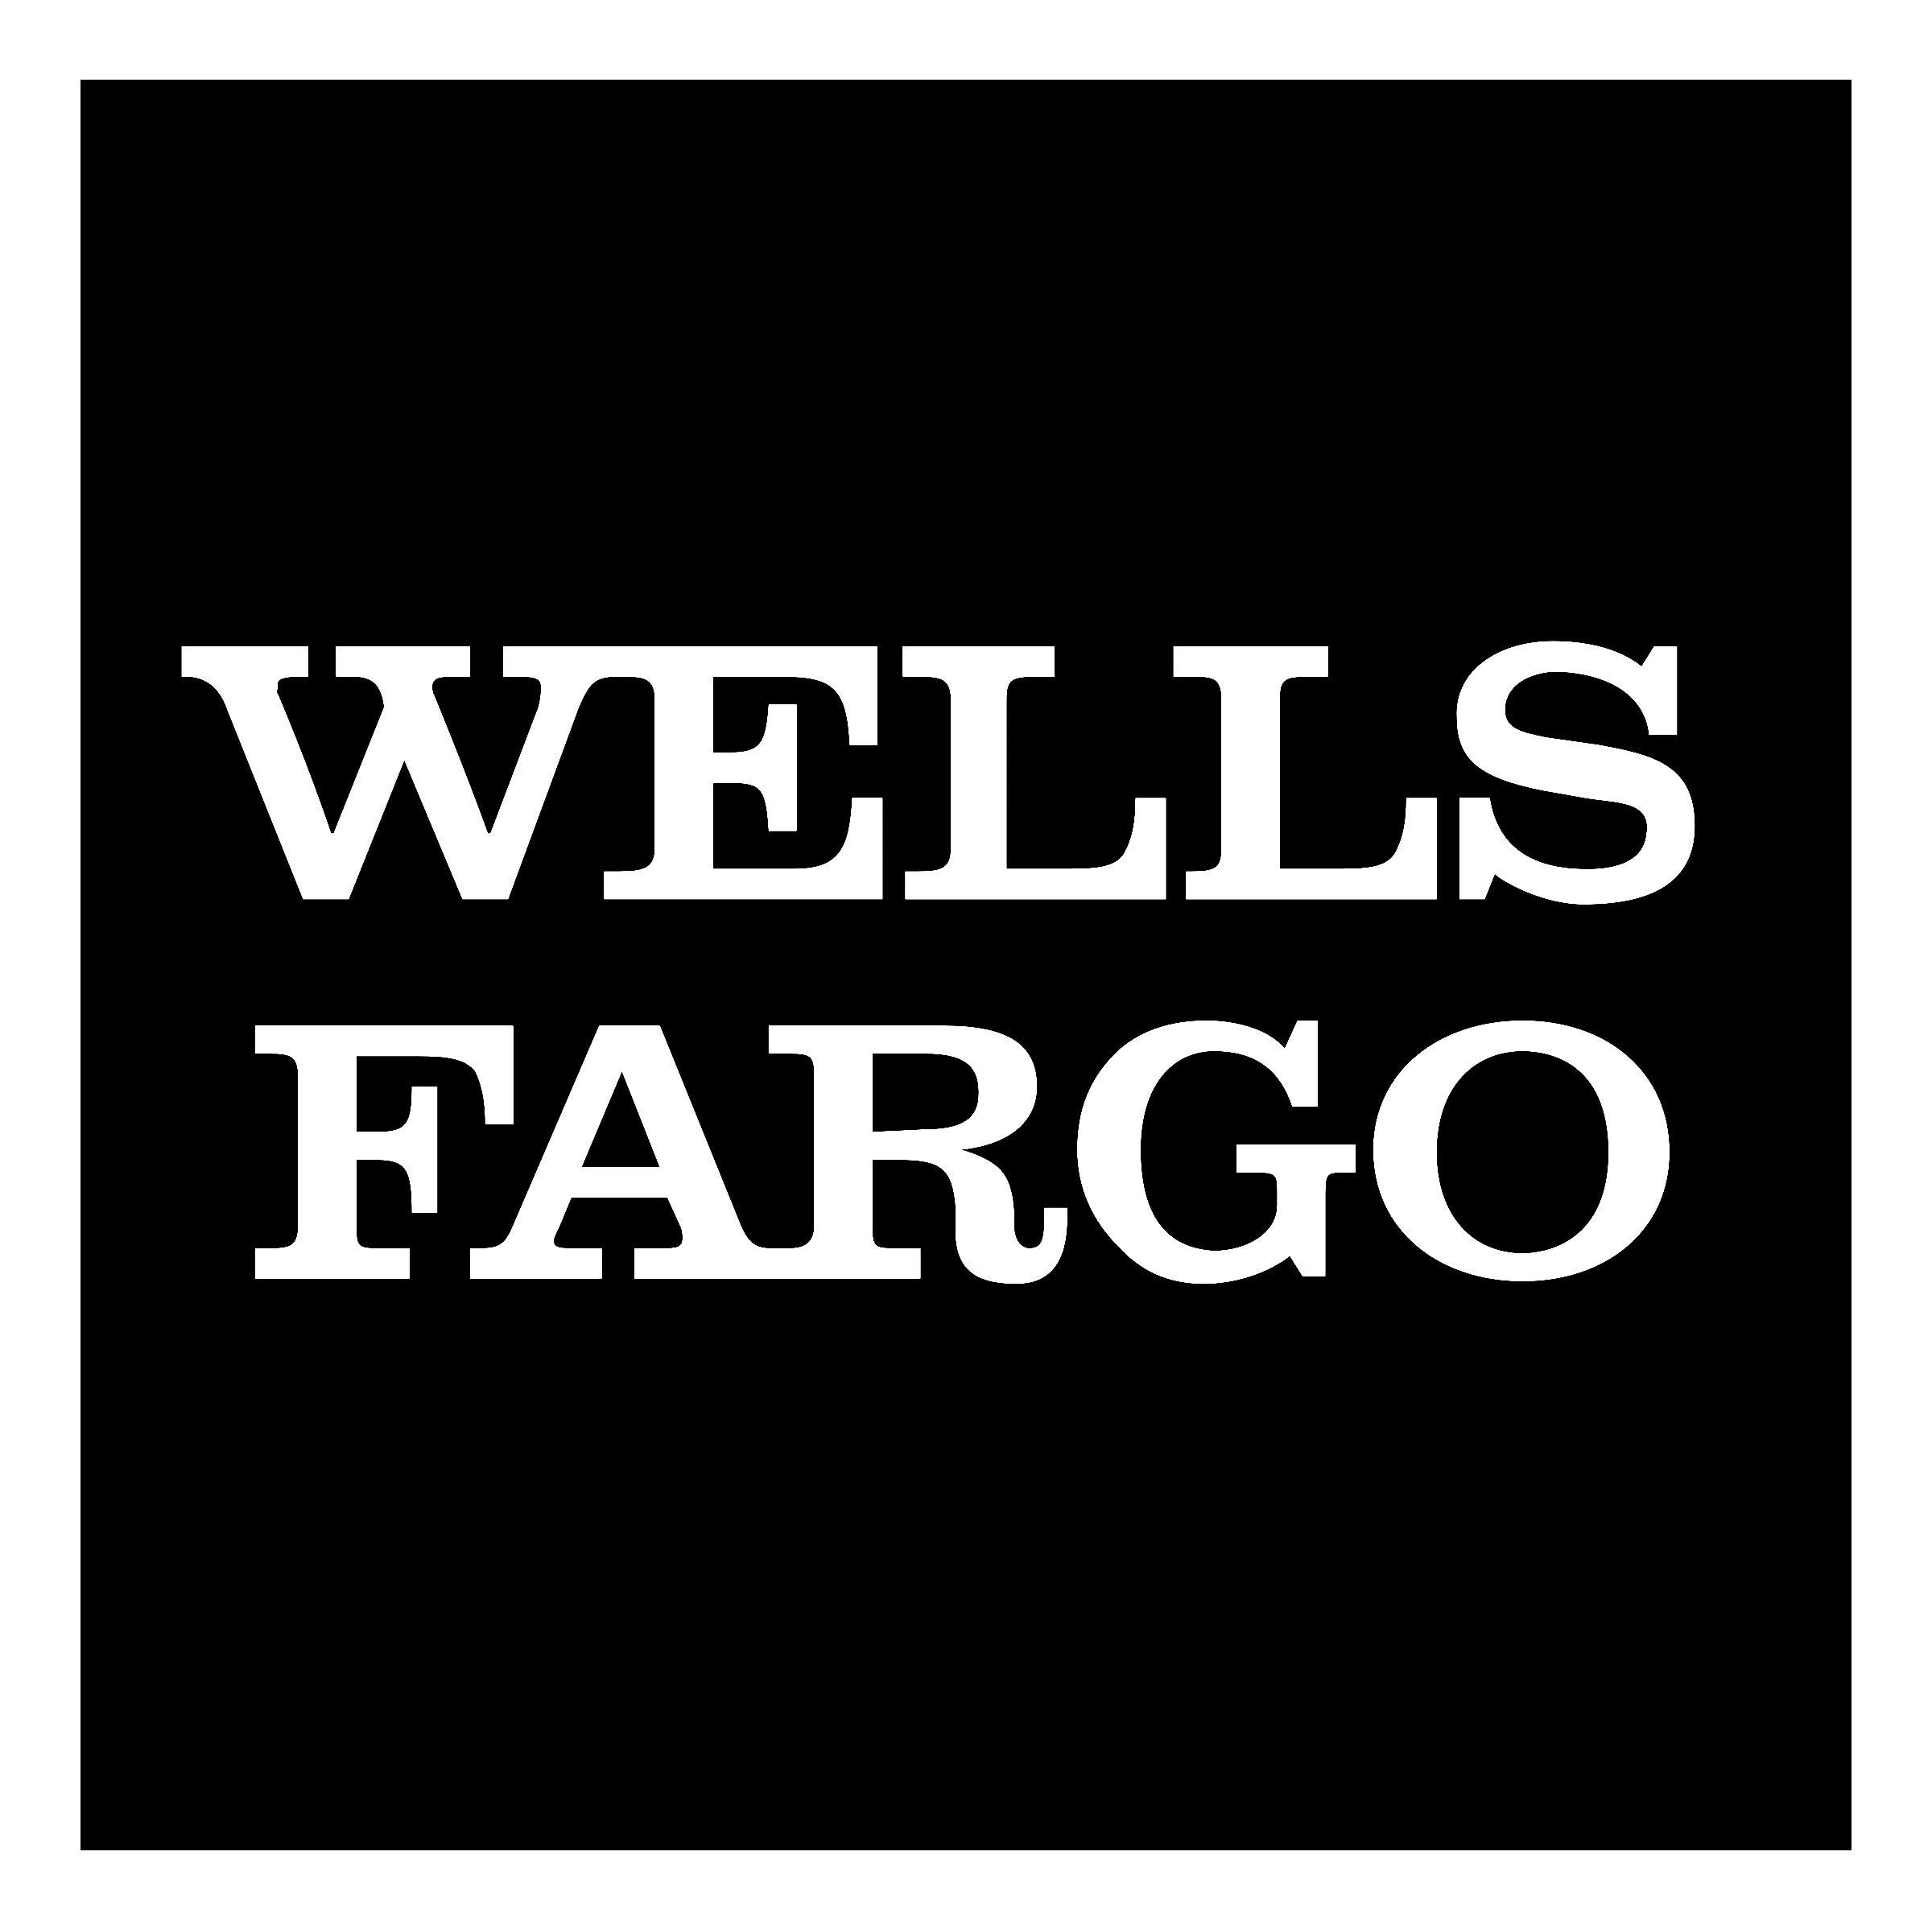 wells-fargo-logo-black-transparent